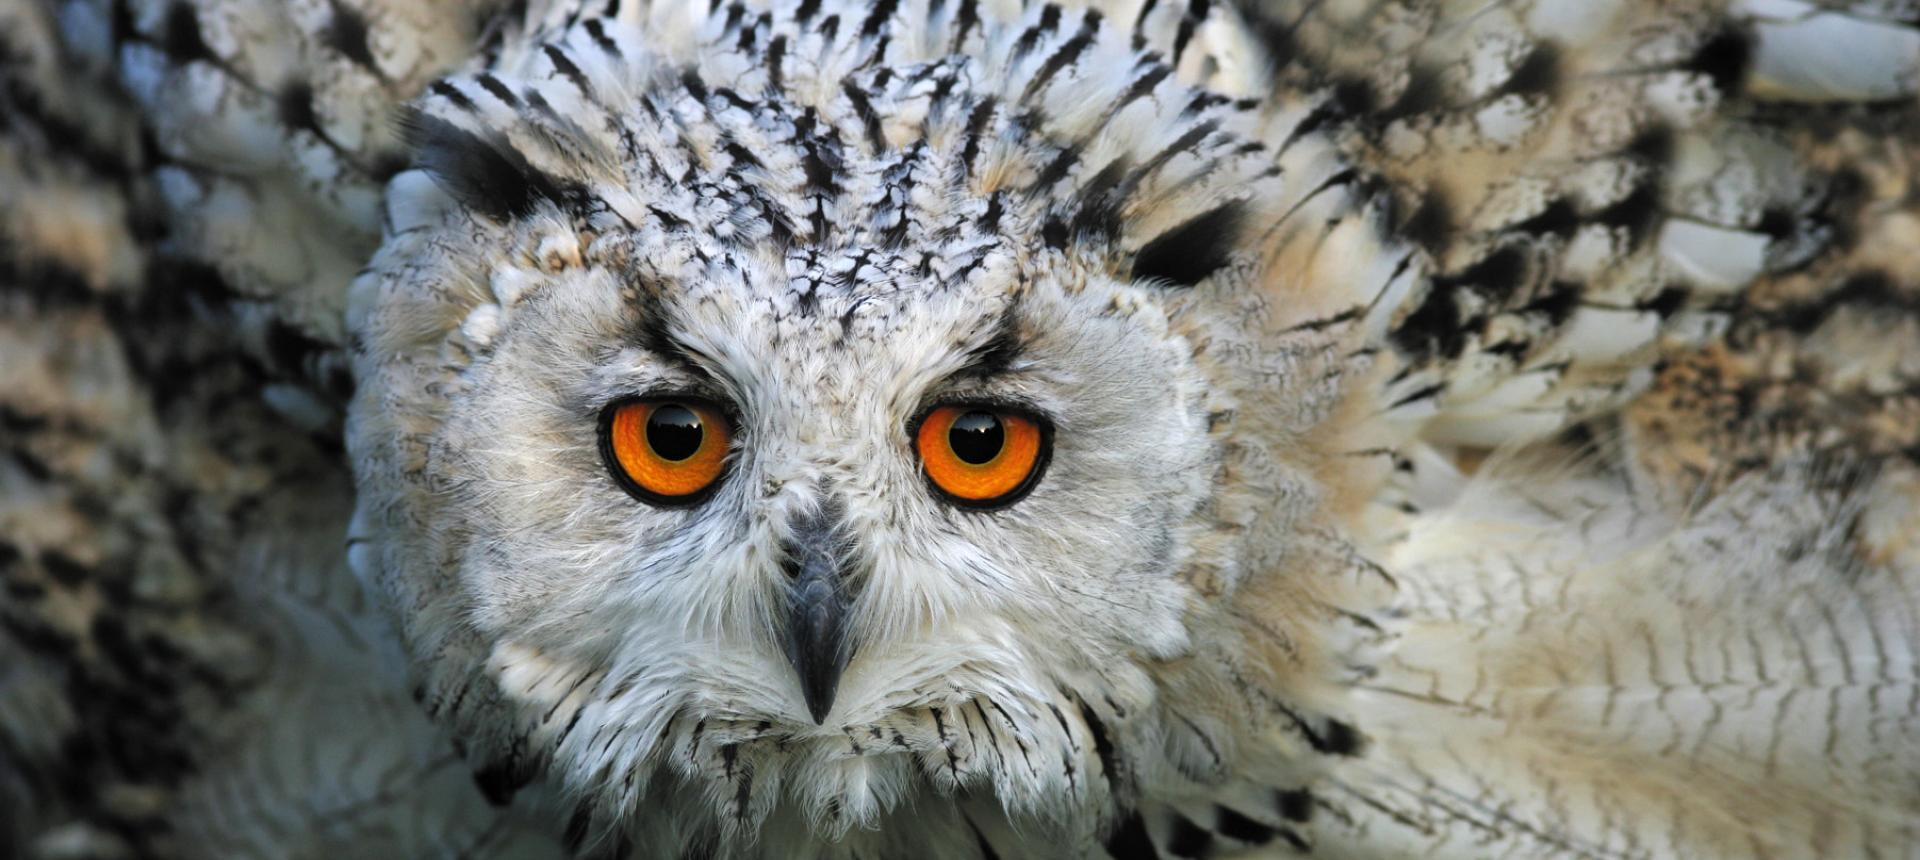 Reintroduction into the wild of an eagle owl, quarry Paderborn, Germany